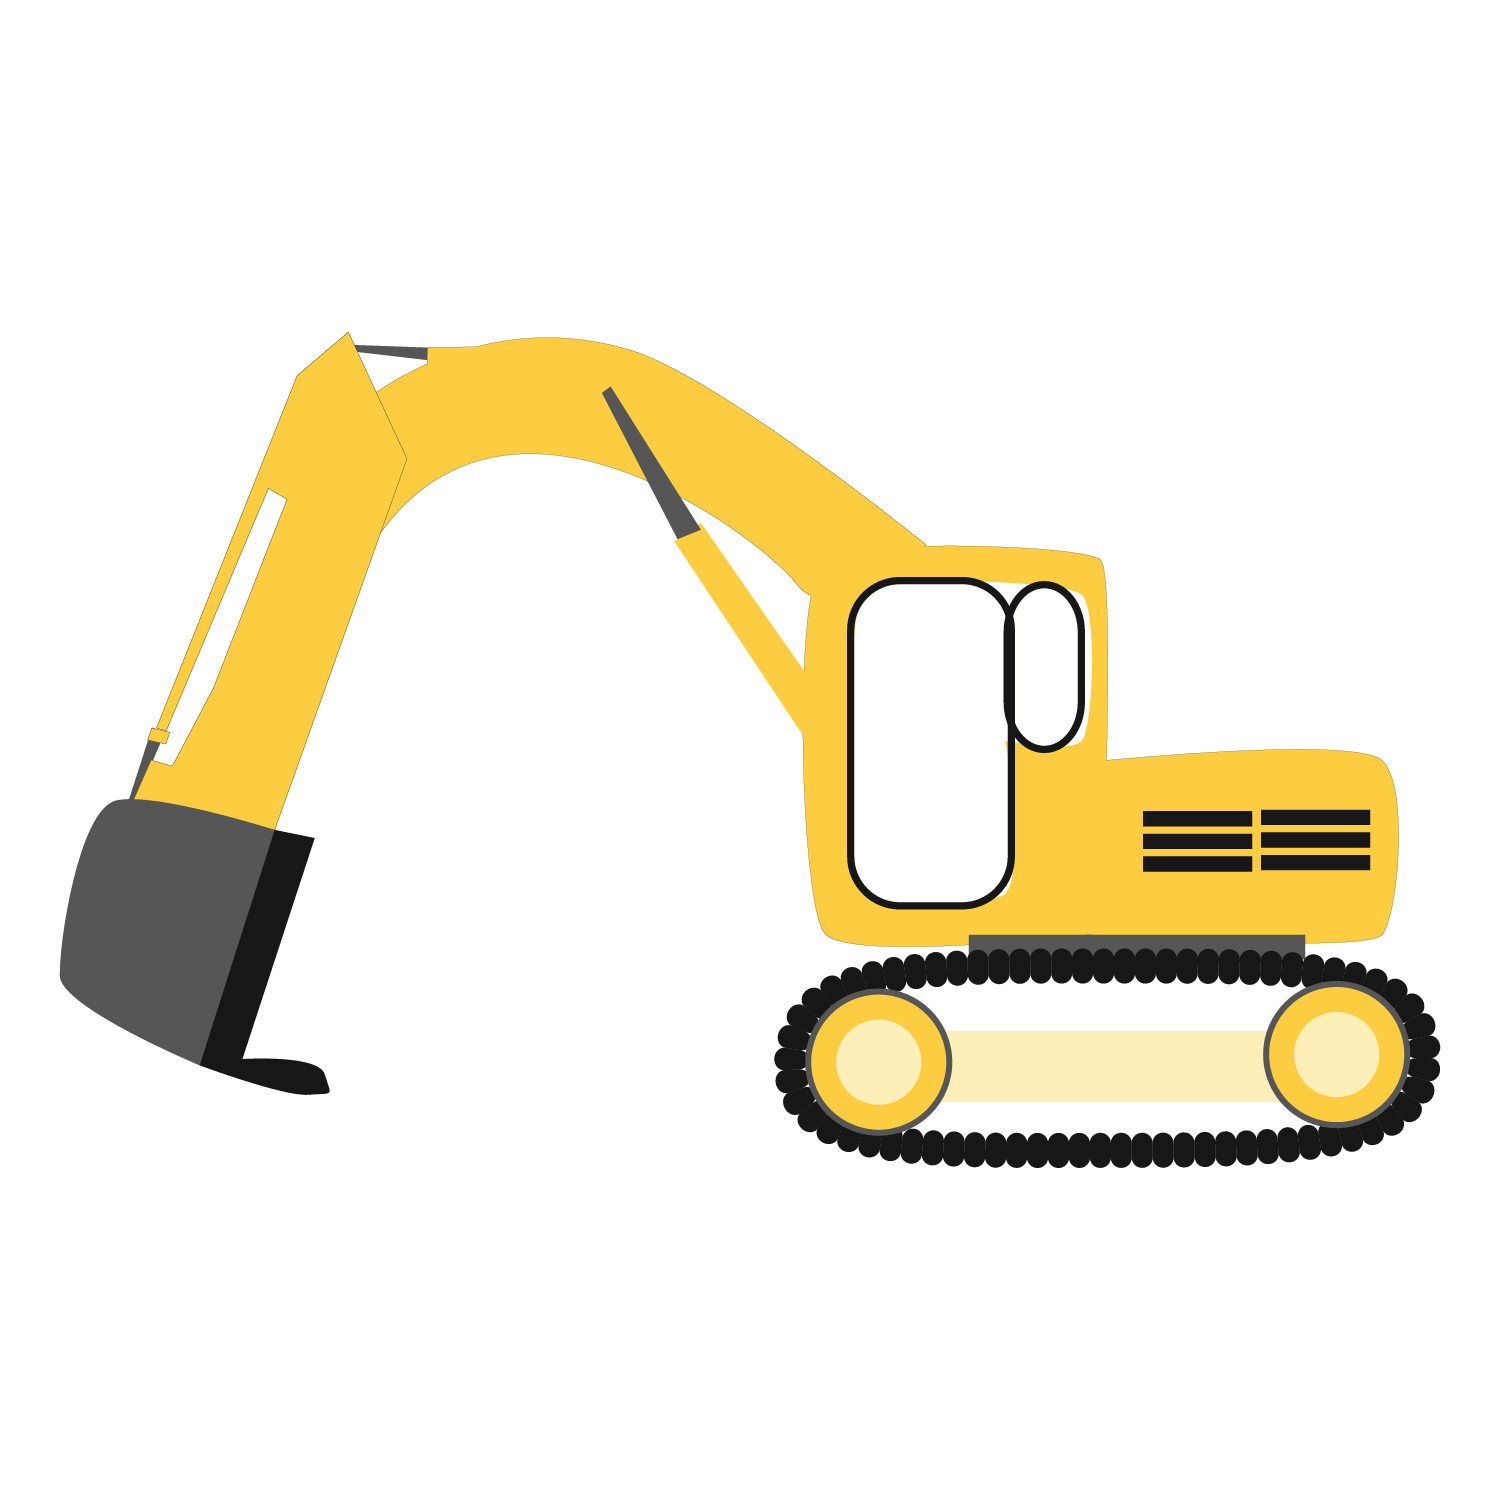 Excavator clipart construction. Trucks svg files by